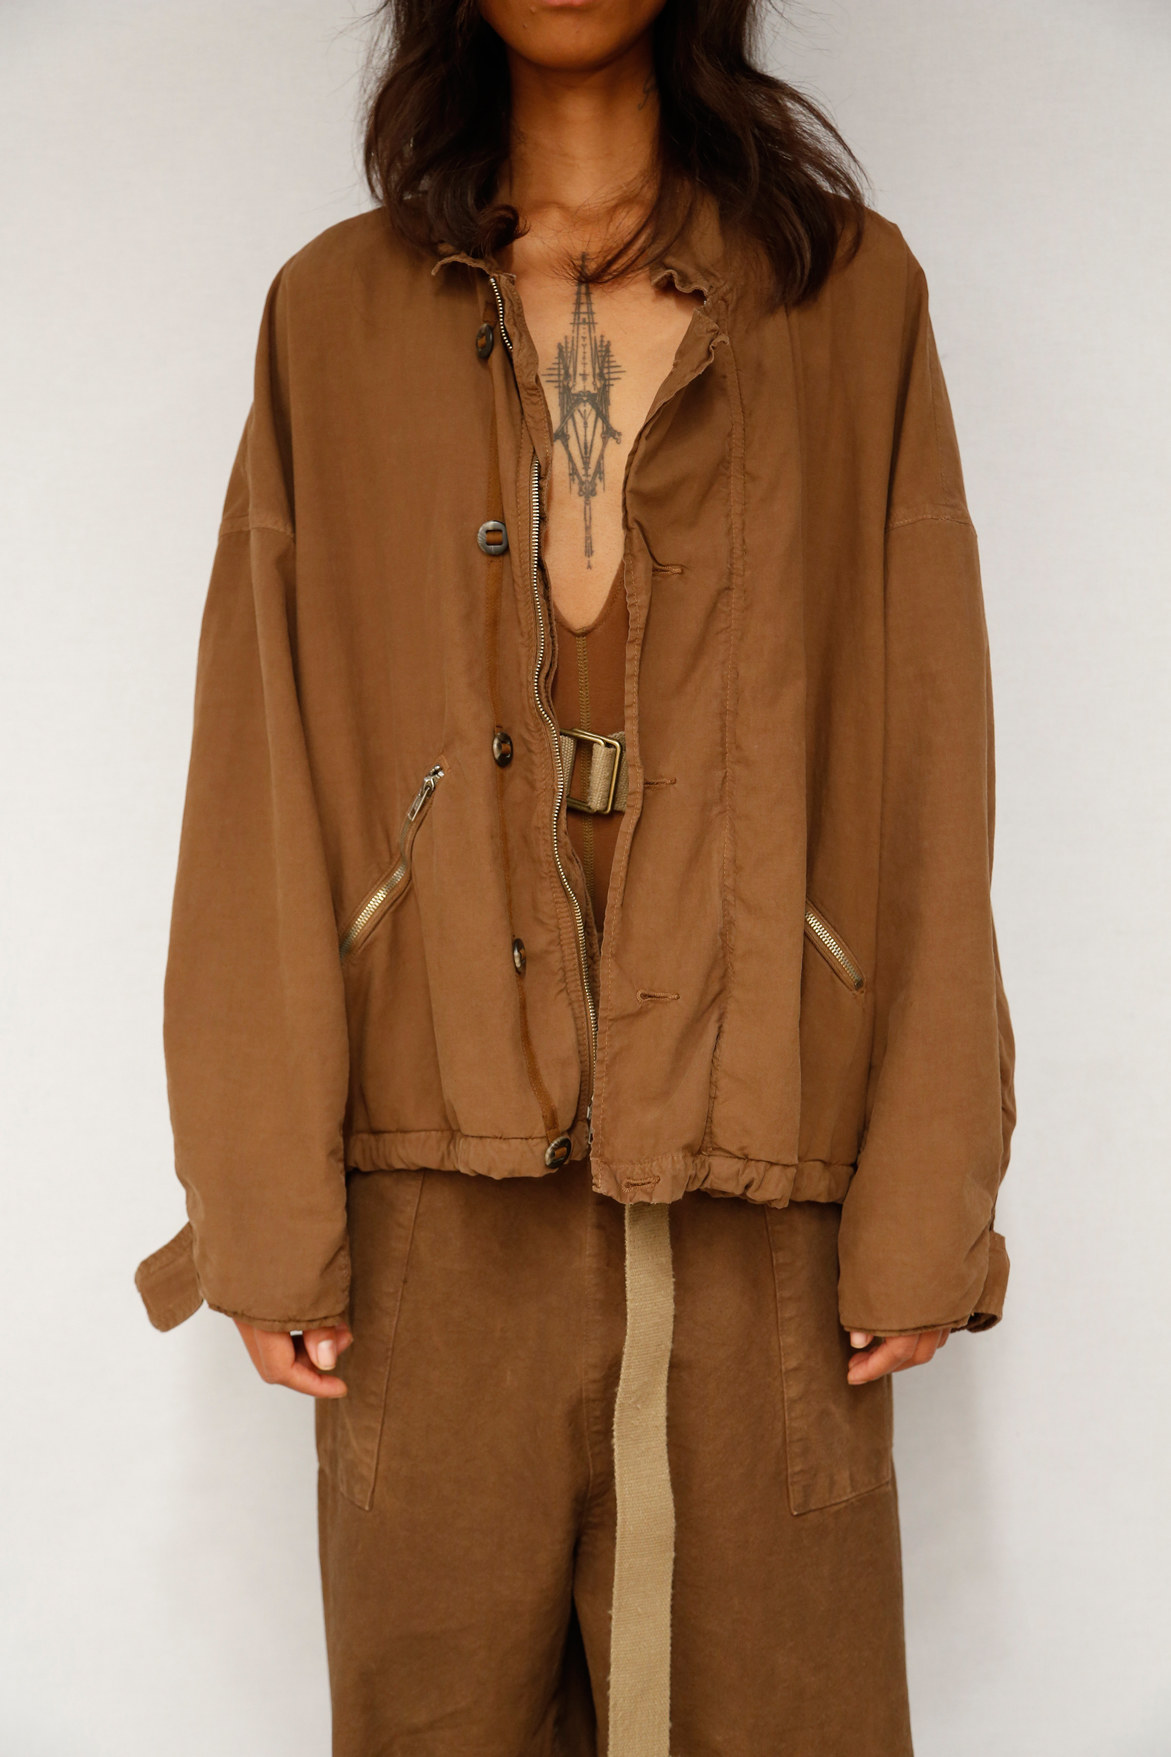 7c04a064c69 Kanye West s Yeezy Season 2 Looked Like More of the Same - Racked